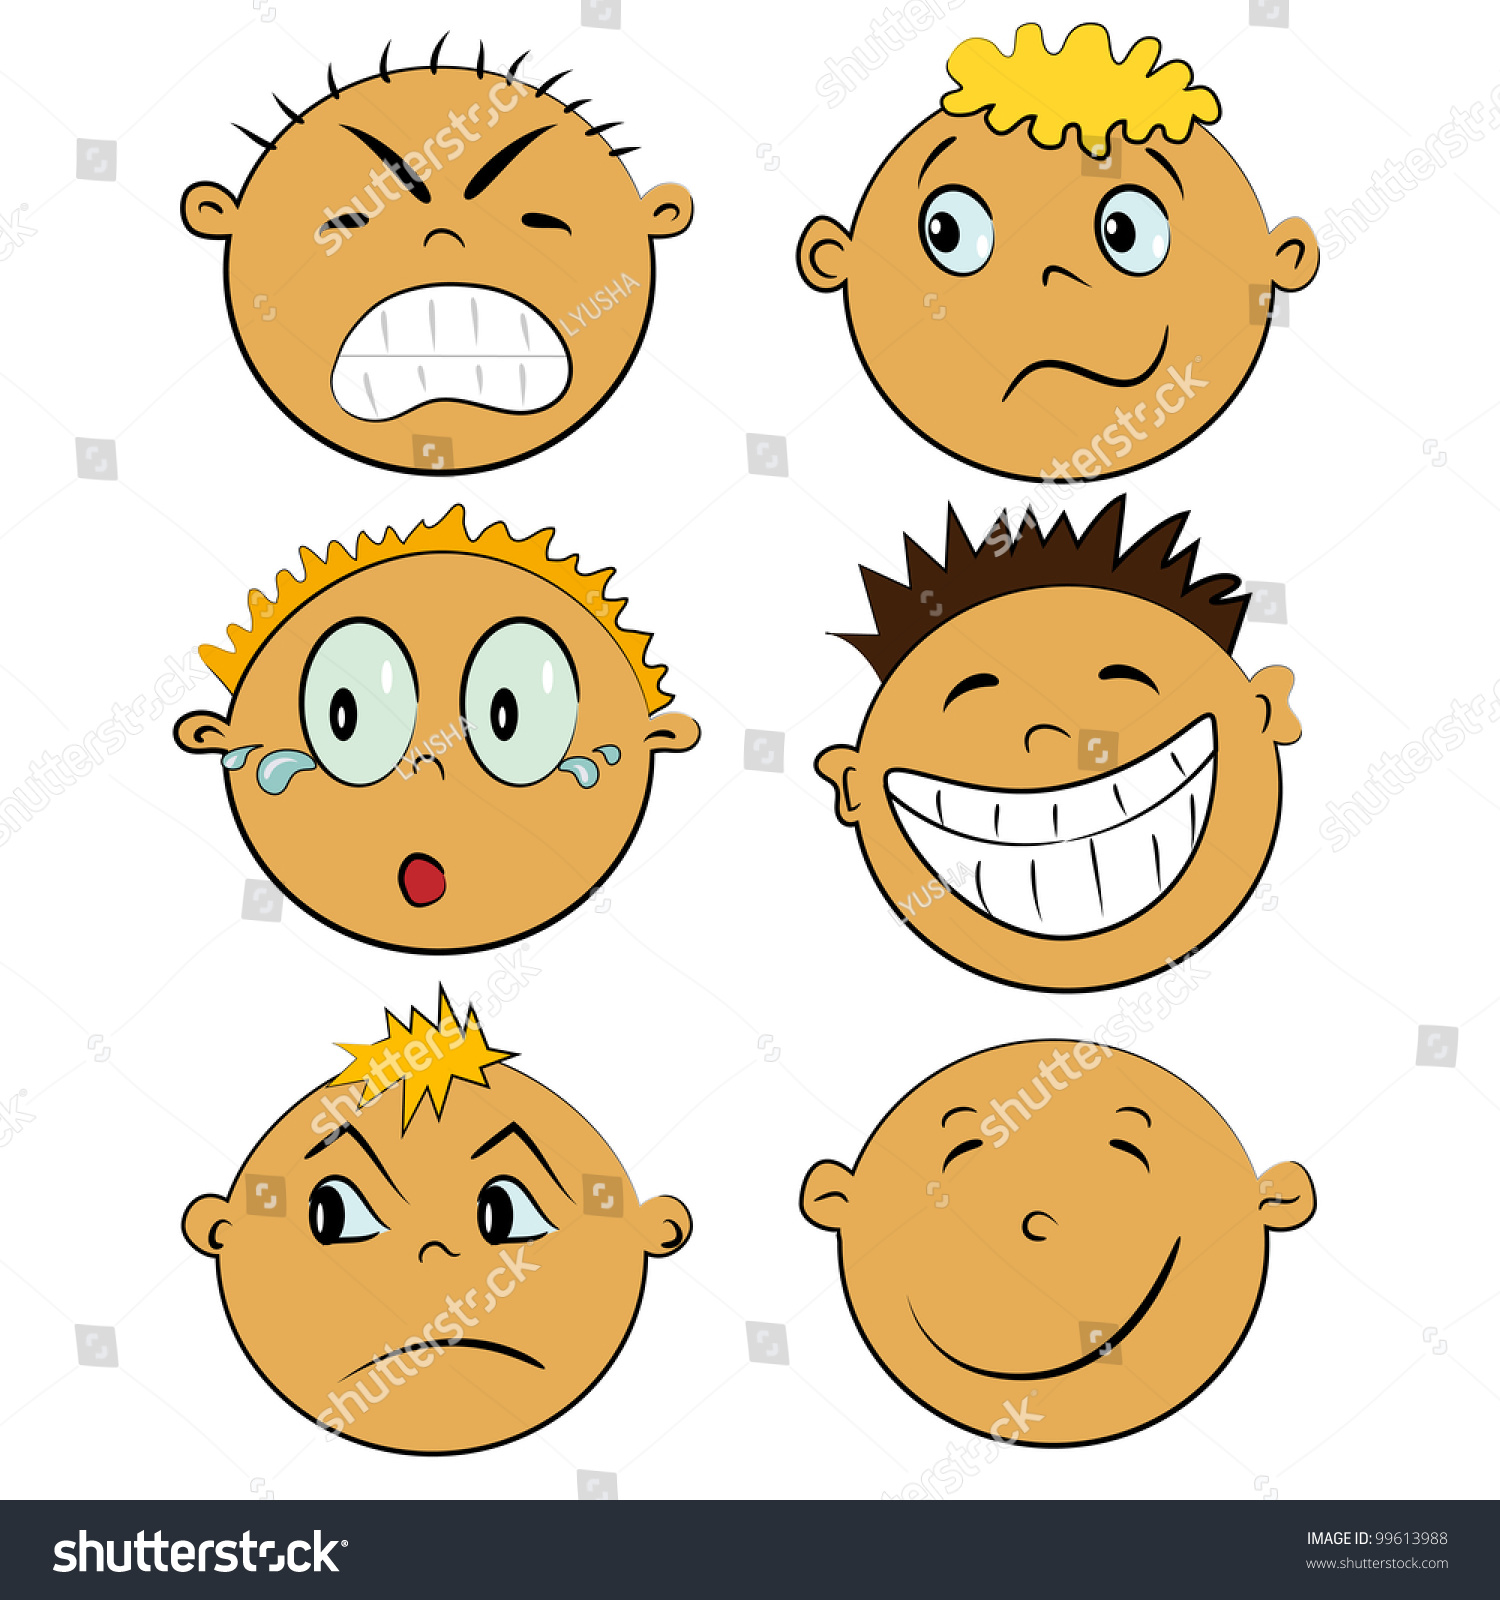 Worksheets Emotion Faces emotion faces set cartoon children emotions collection stock save to a lightbox